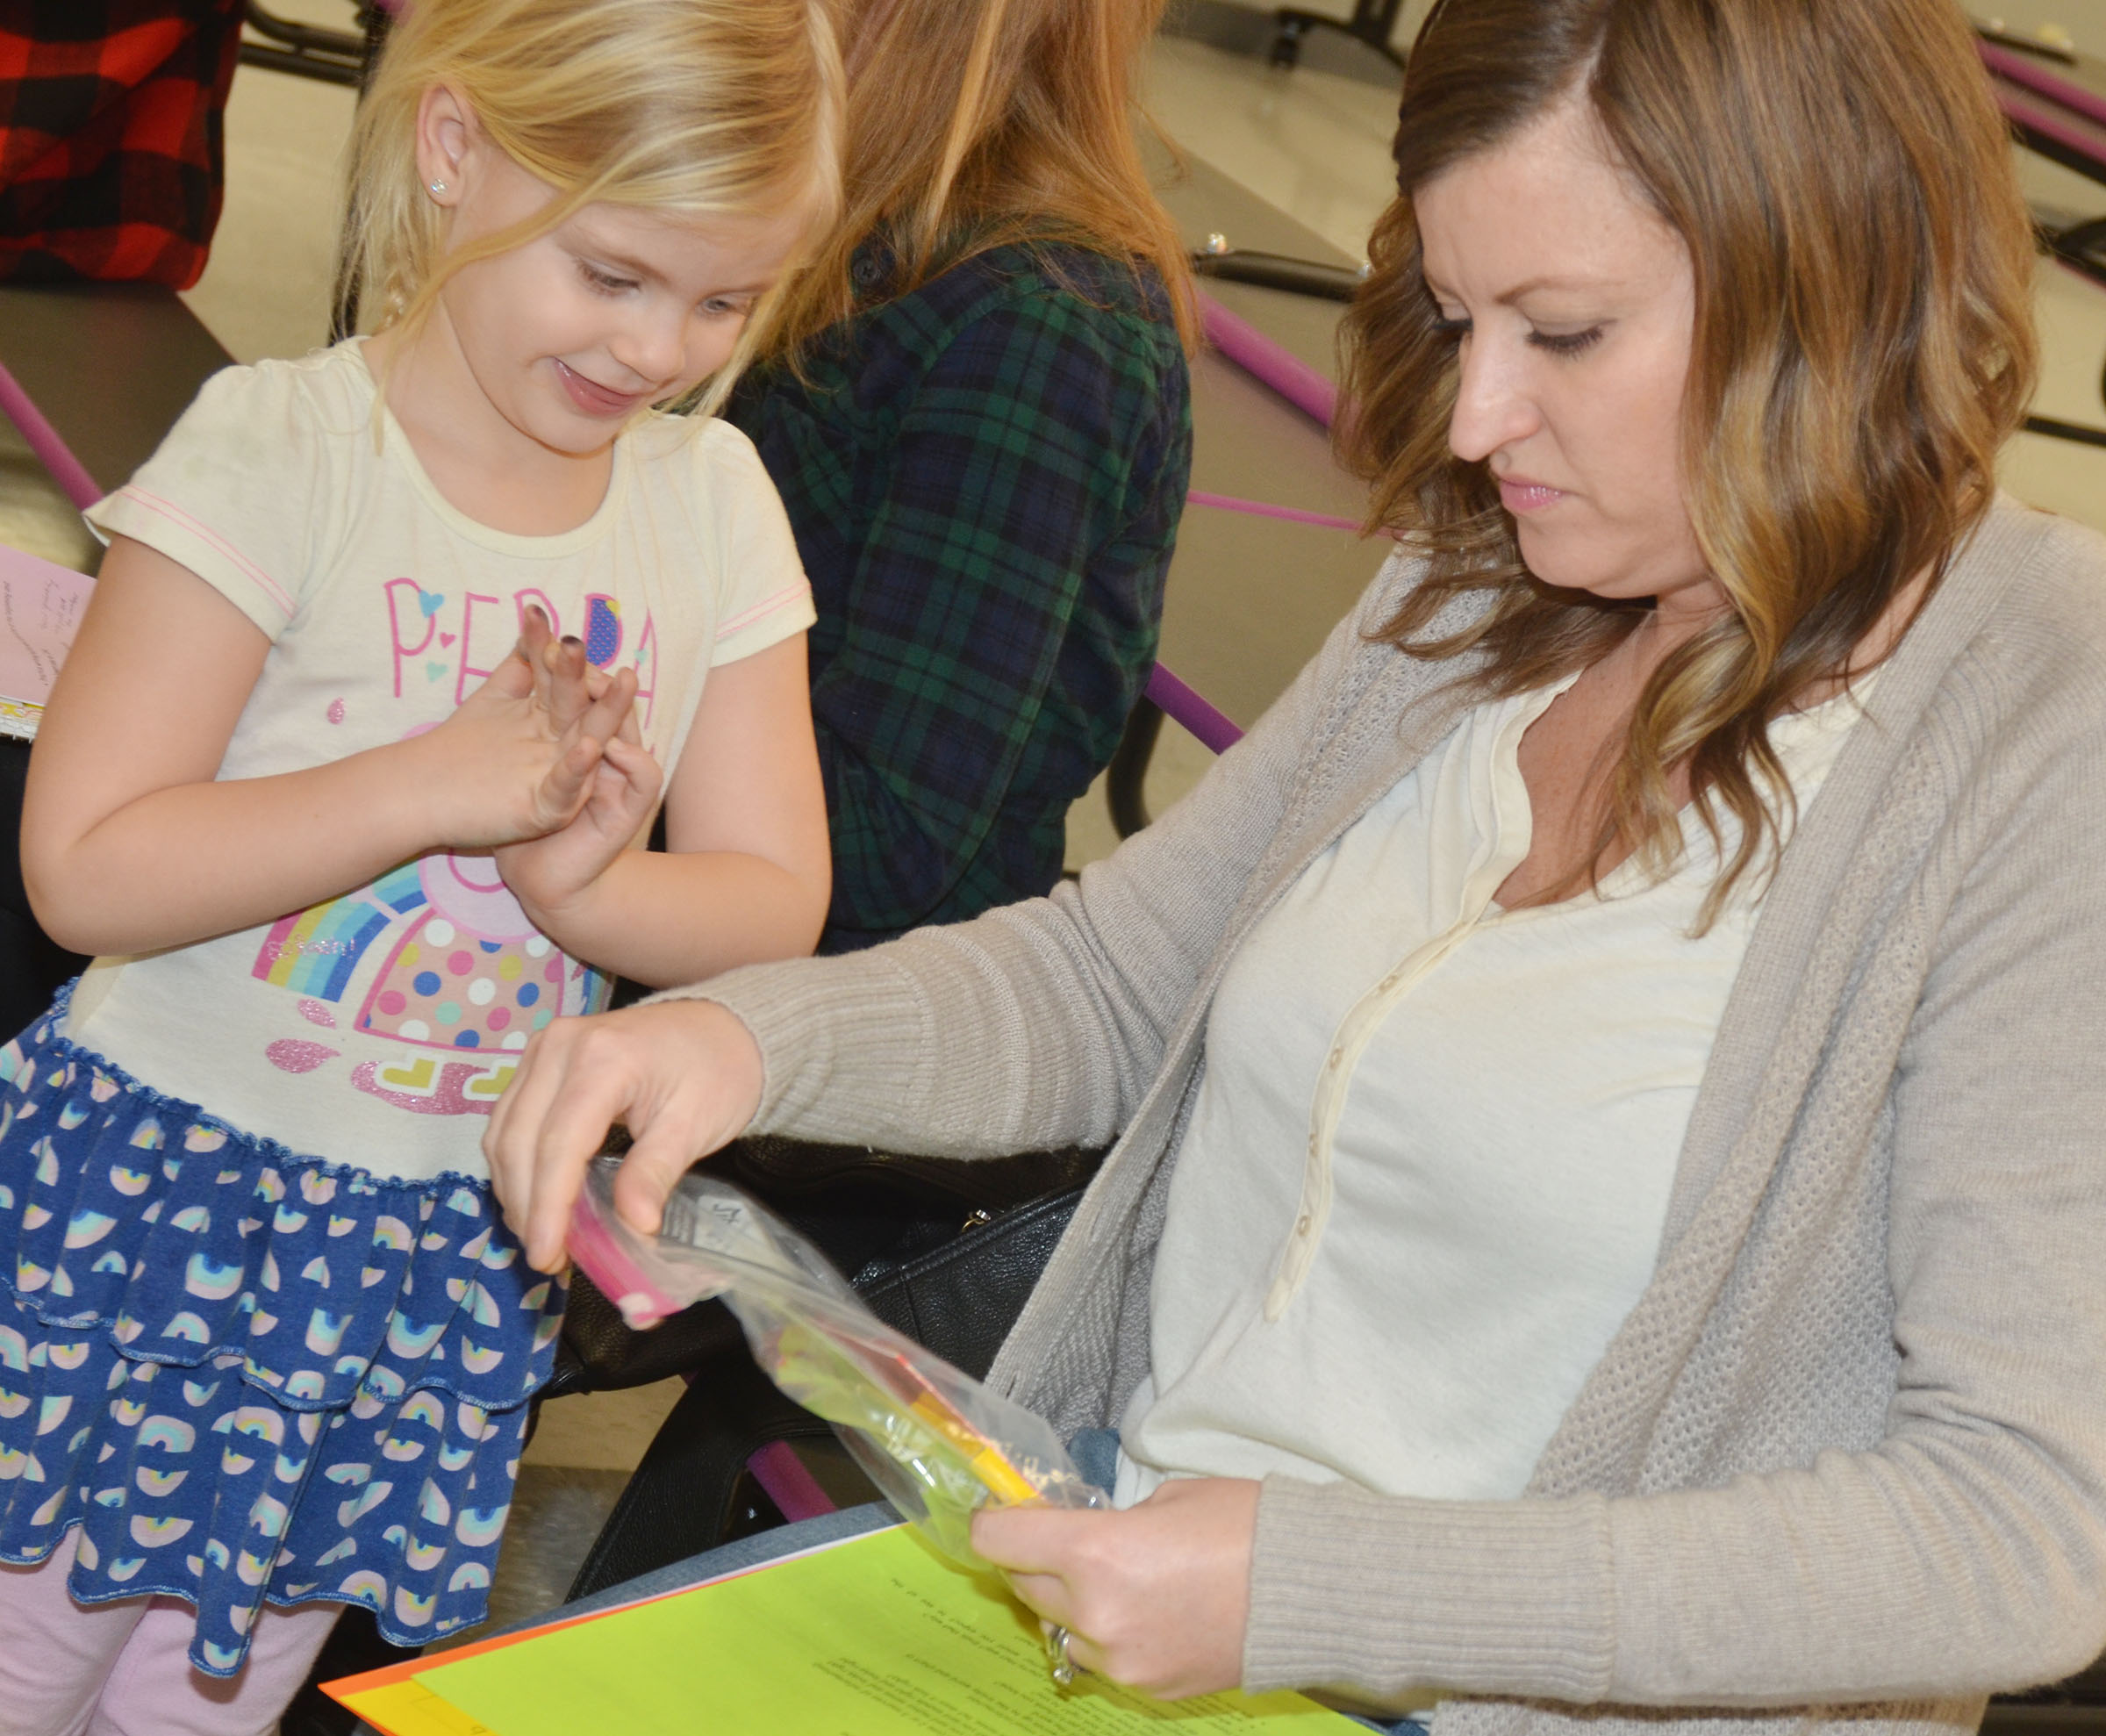 CES teacher Ashlee Petett shows her daughter, Remi, some books and crayons they received at the kindergarten readiness event. Remi will start kindergarten next school year.